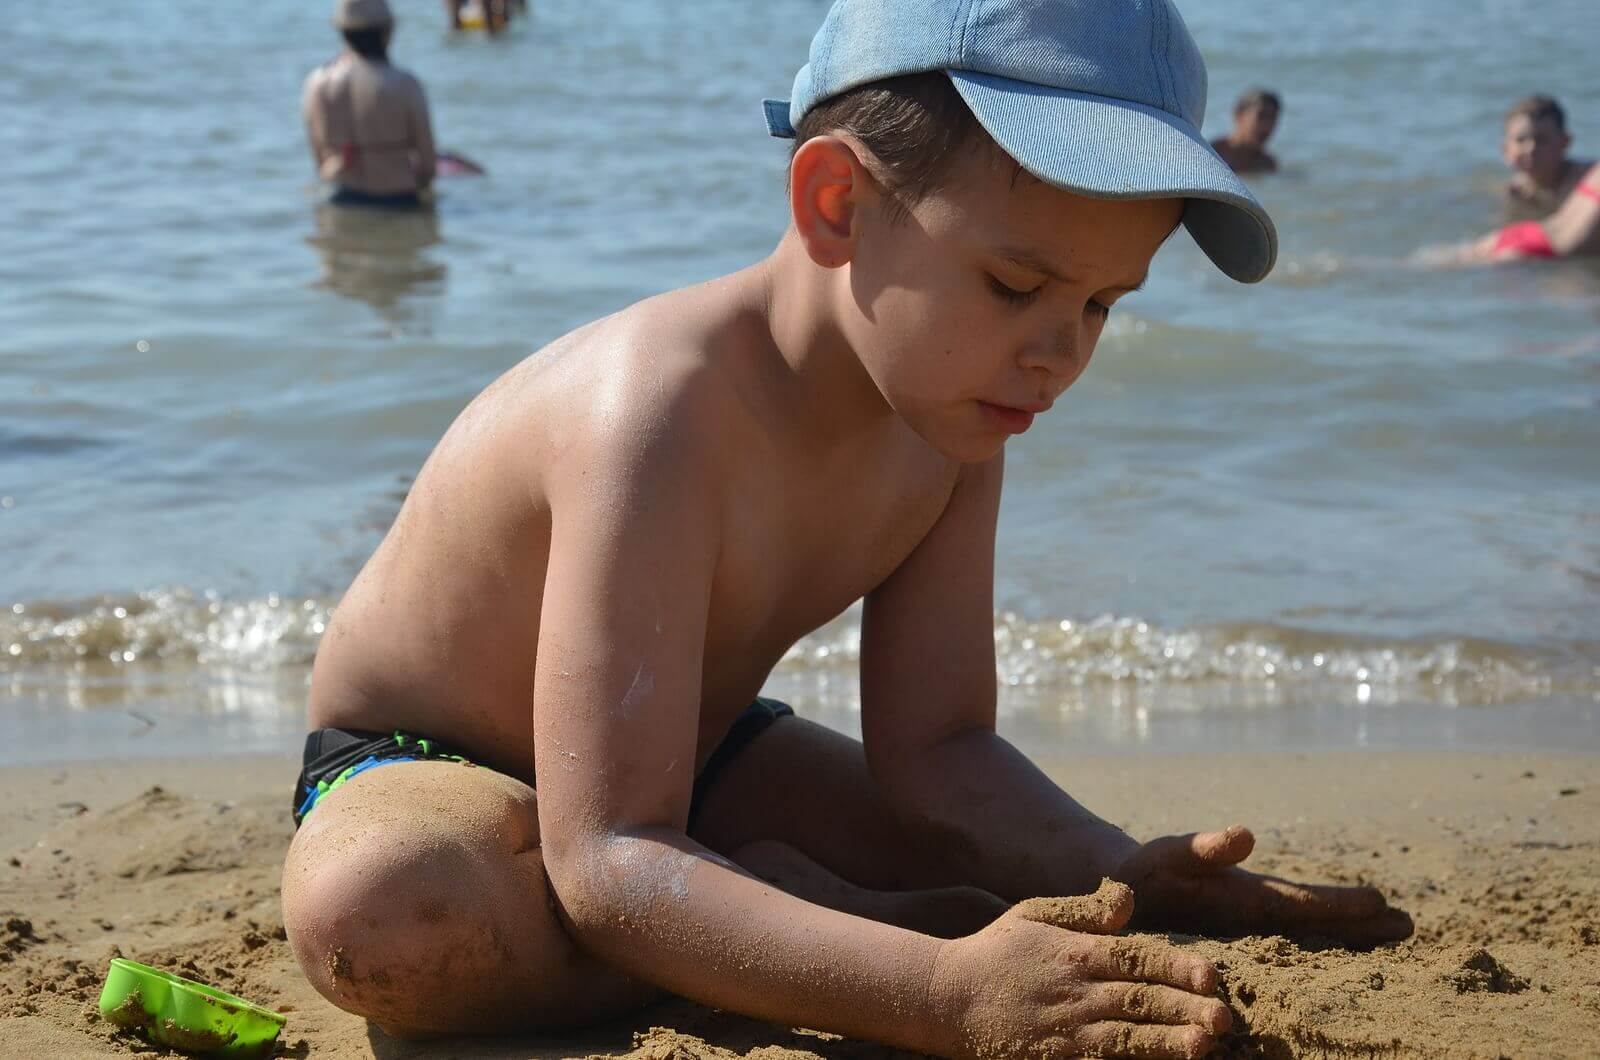 A child playing in the sand at the beach.